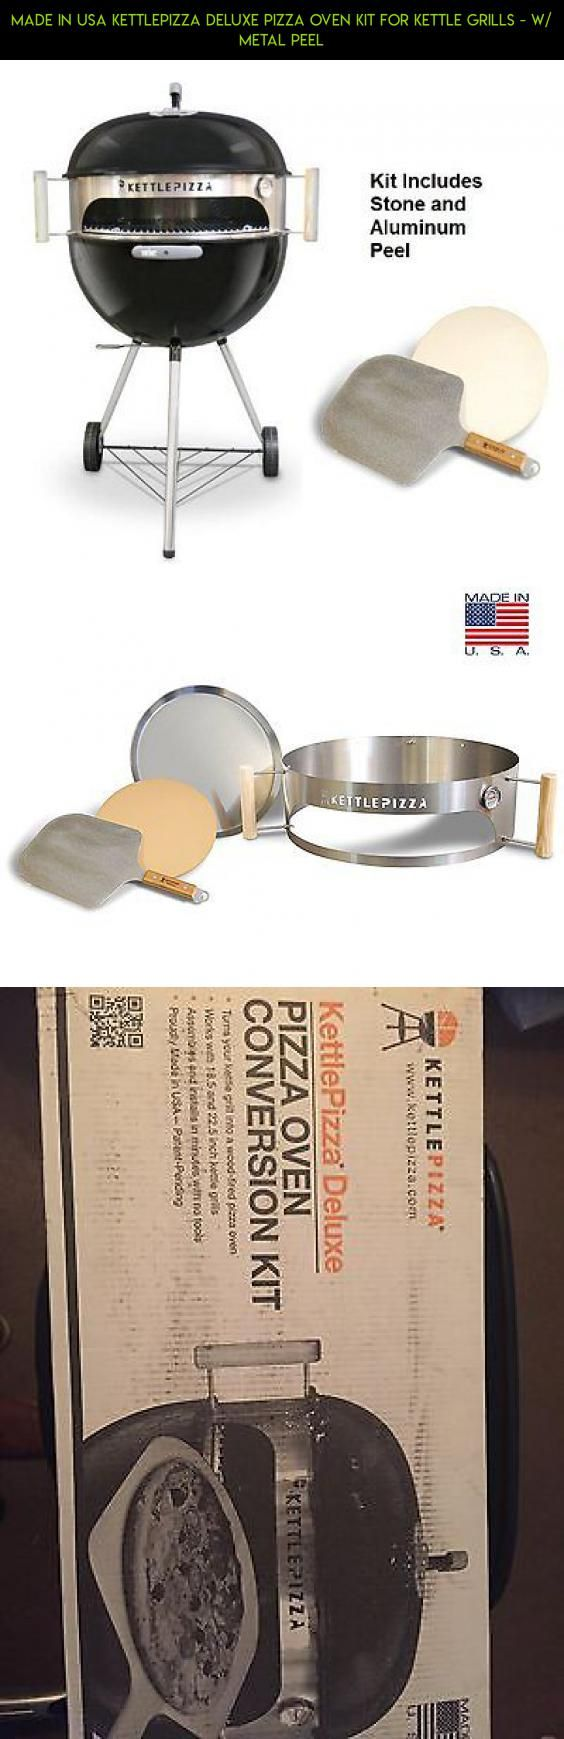 Made in USA KettlePizza Deluxe Pizza Oven Kit for Kettle Grills - w/ Metal peel #drone #racing #tech #fpv #parts #in #kit #usa #shopping #gadgets #technology #products #grills #plans #camera #made